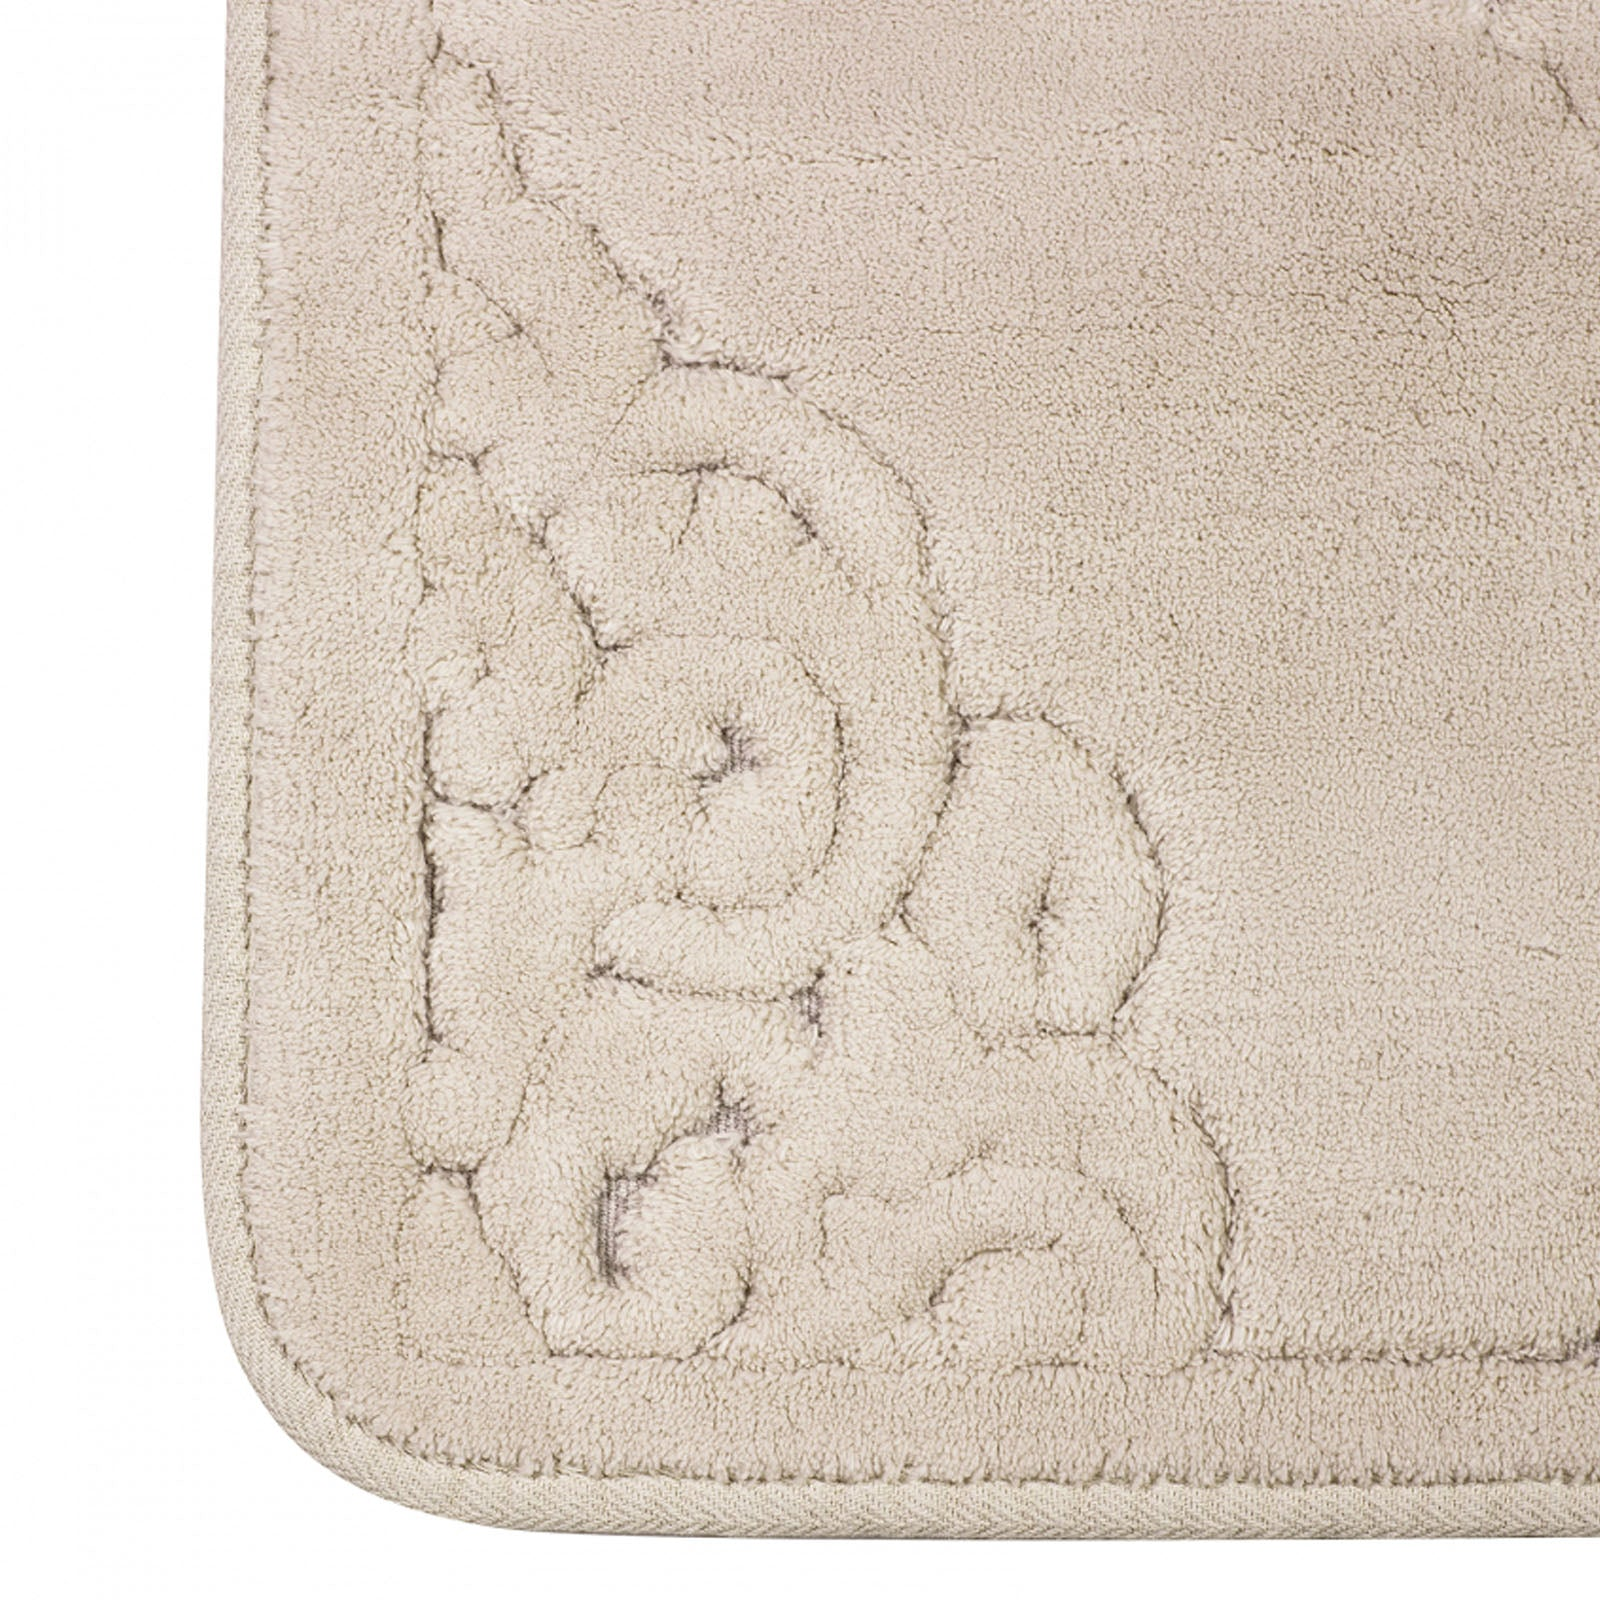 Karaca Home Damila Ecru 2 Pieces Bath Mat 200.15.01.0268 -  سجادة حمام من كاراجا قطعتان - Shop Online Furniture and Home Decor Store in Dubai, UAE at ebarza